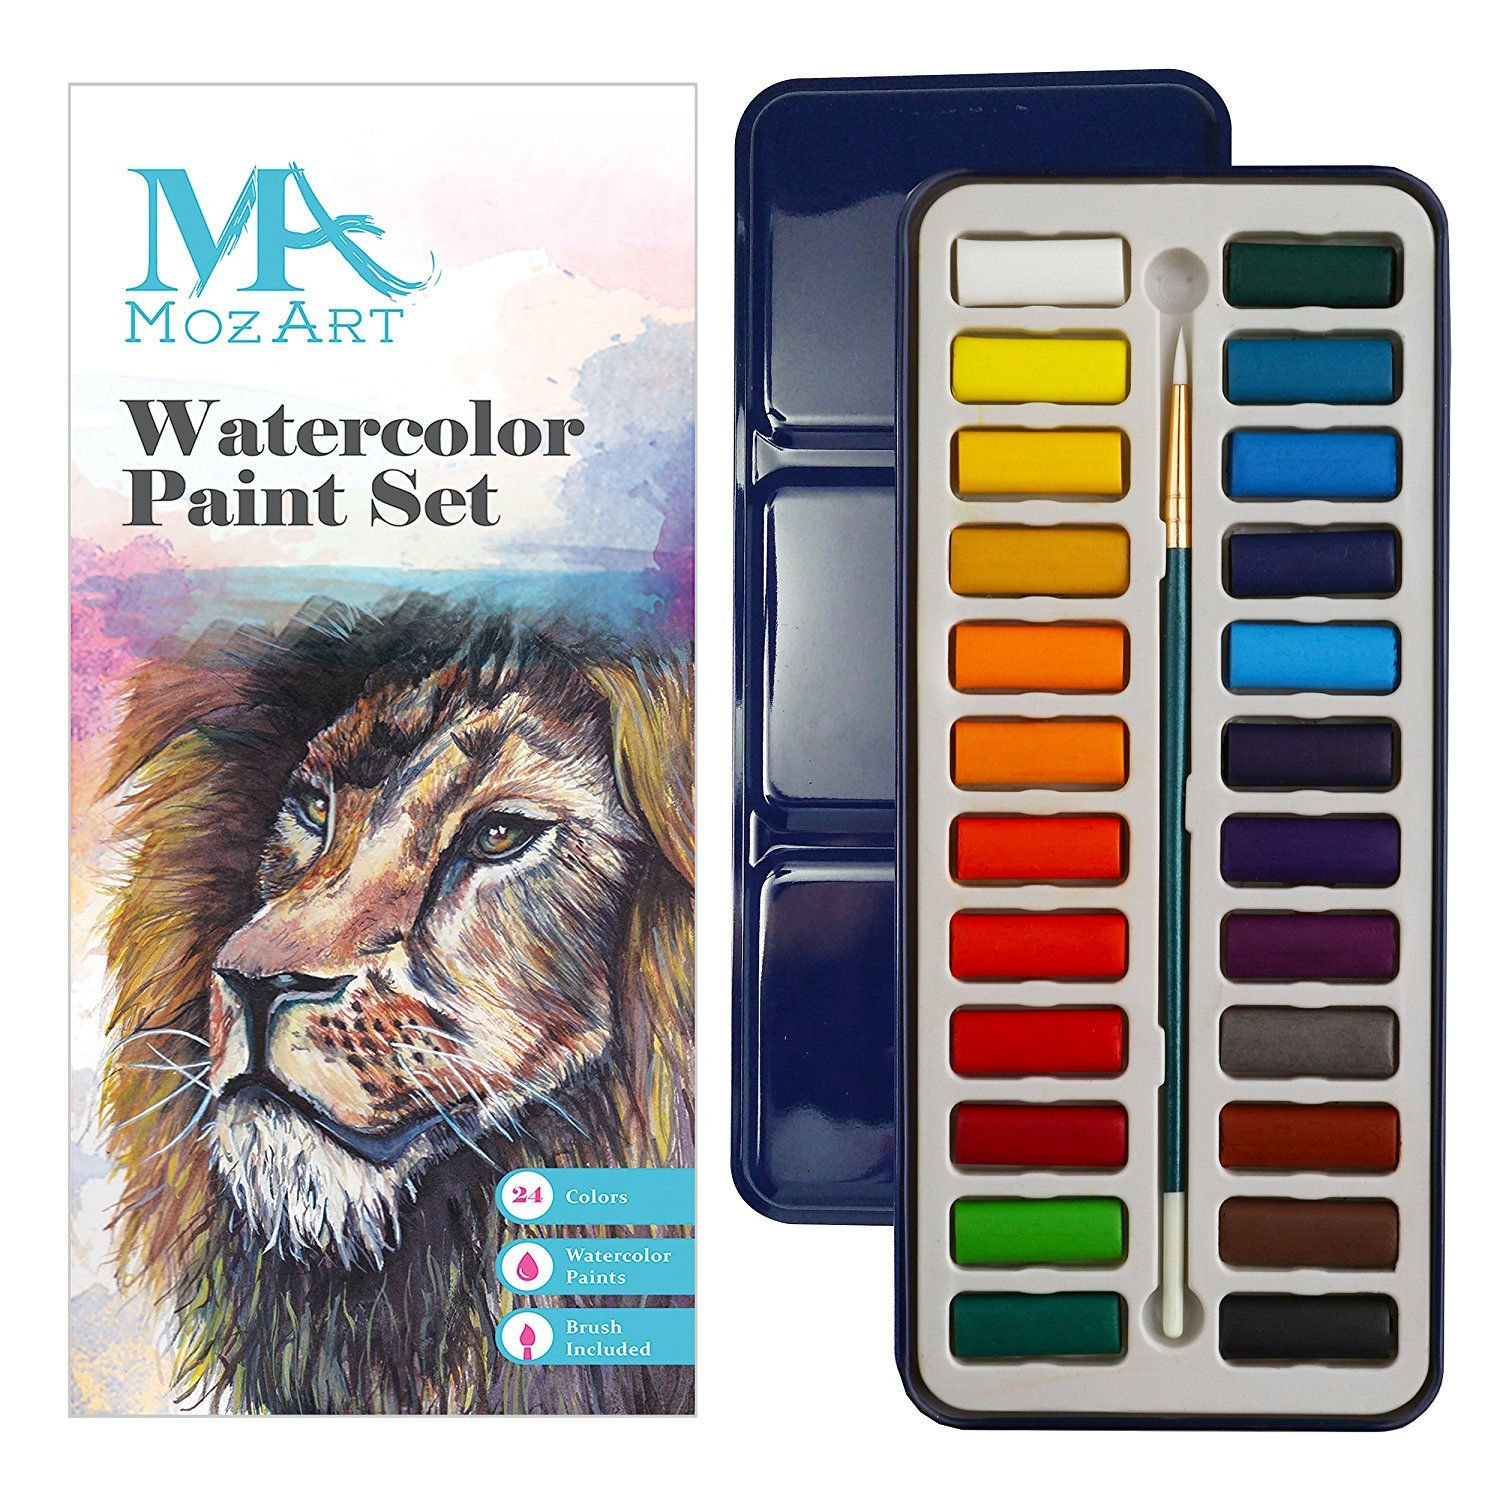 Watercolor Paint Set - 24 Vibrant Colors - Lightweight and Portable - Perfect for Beginners, Budding Hobbyists and Artists - Paint Brush Included - MozArt Supplies